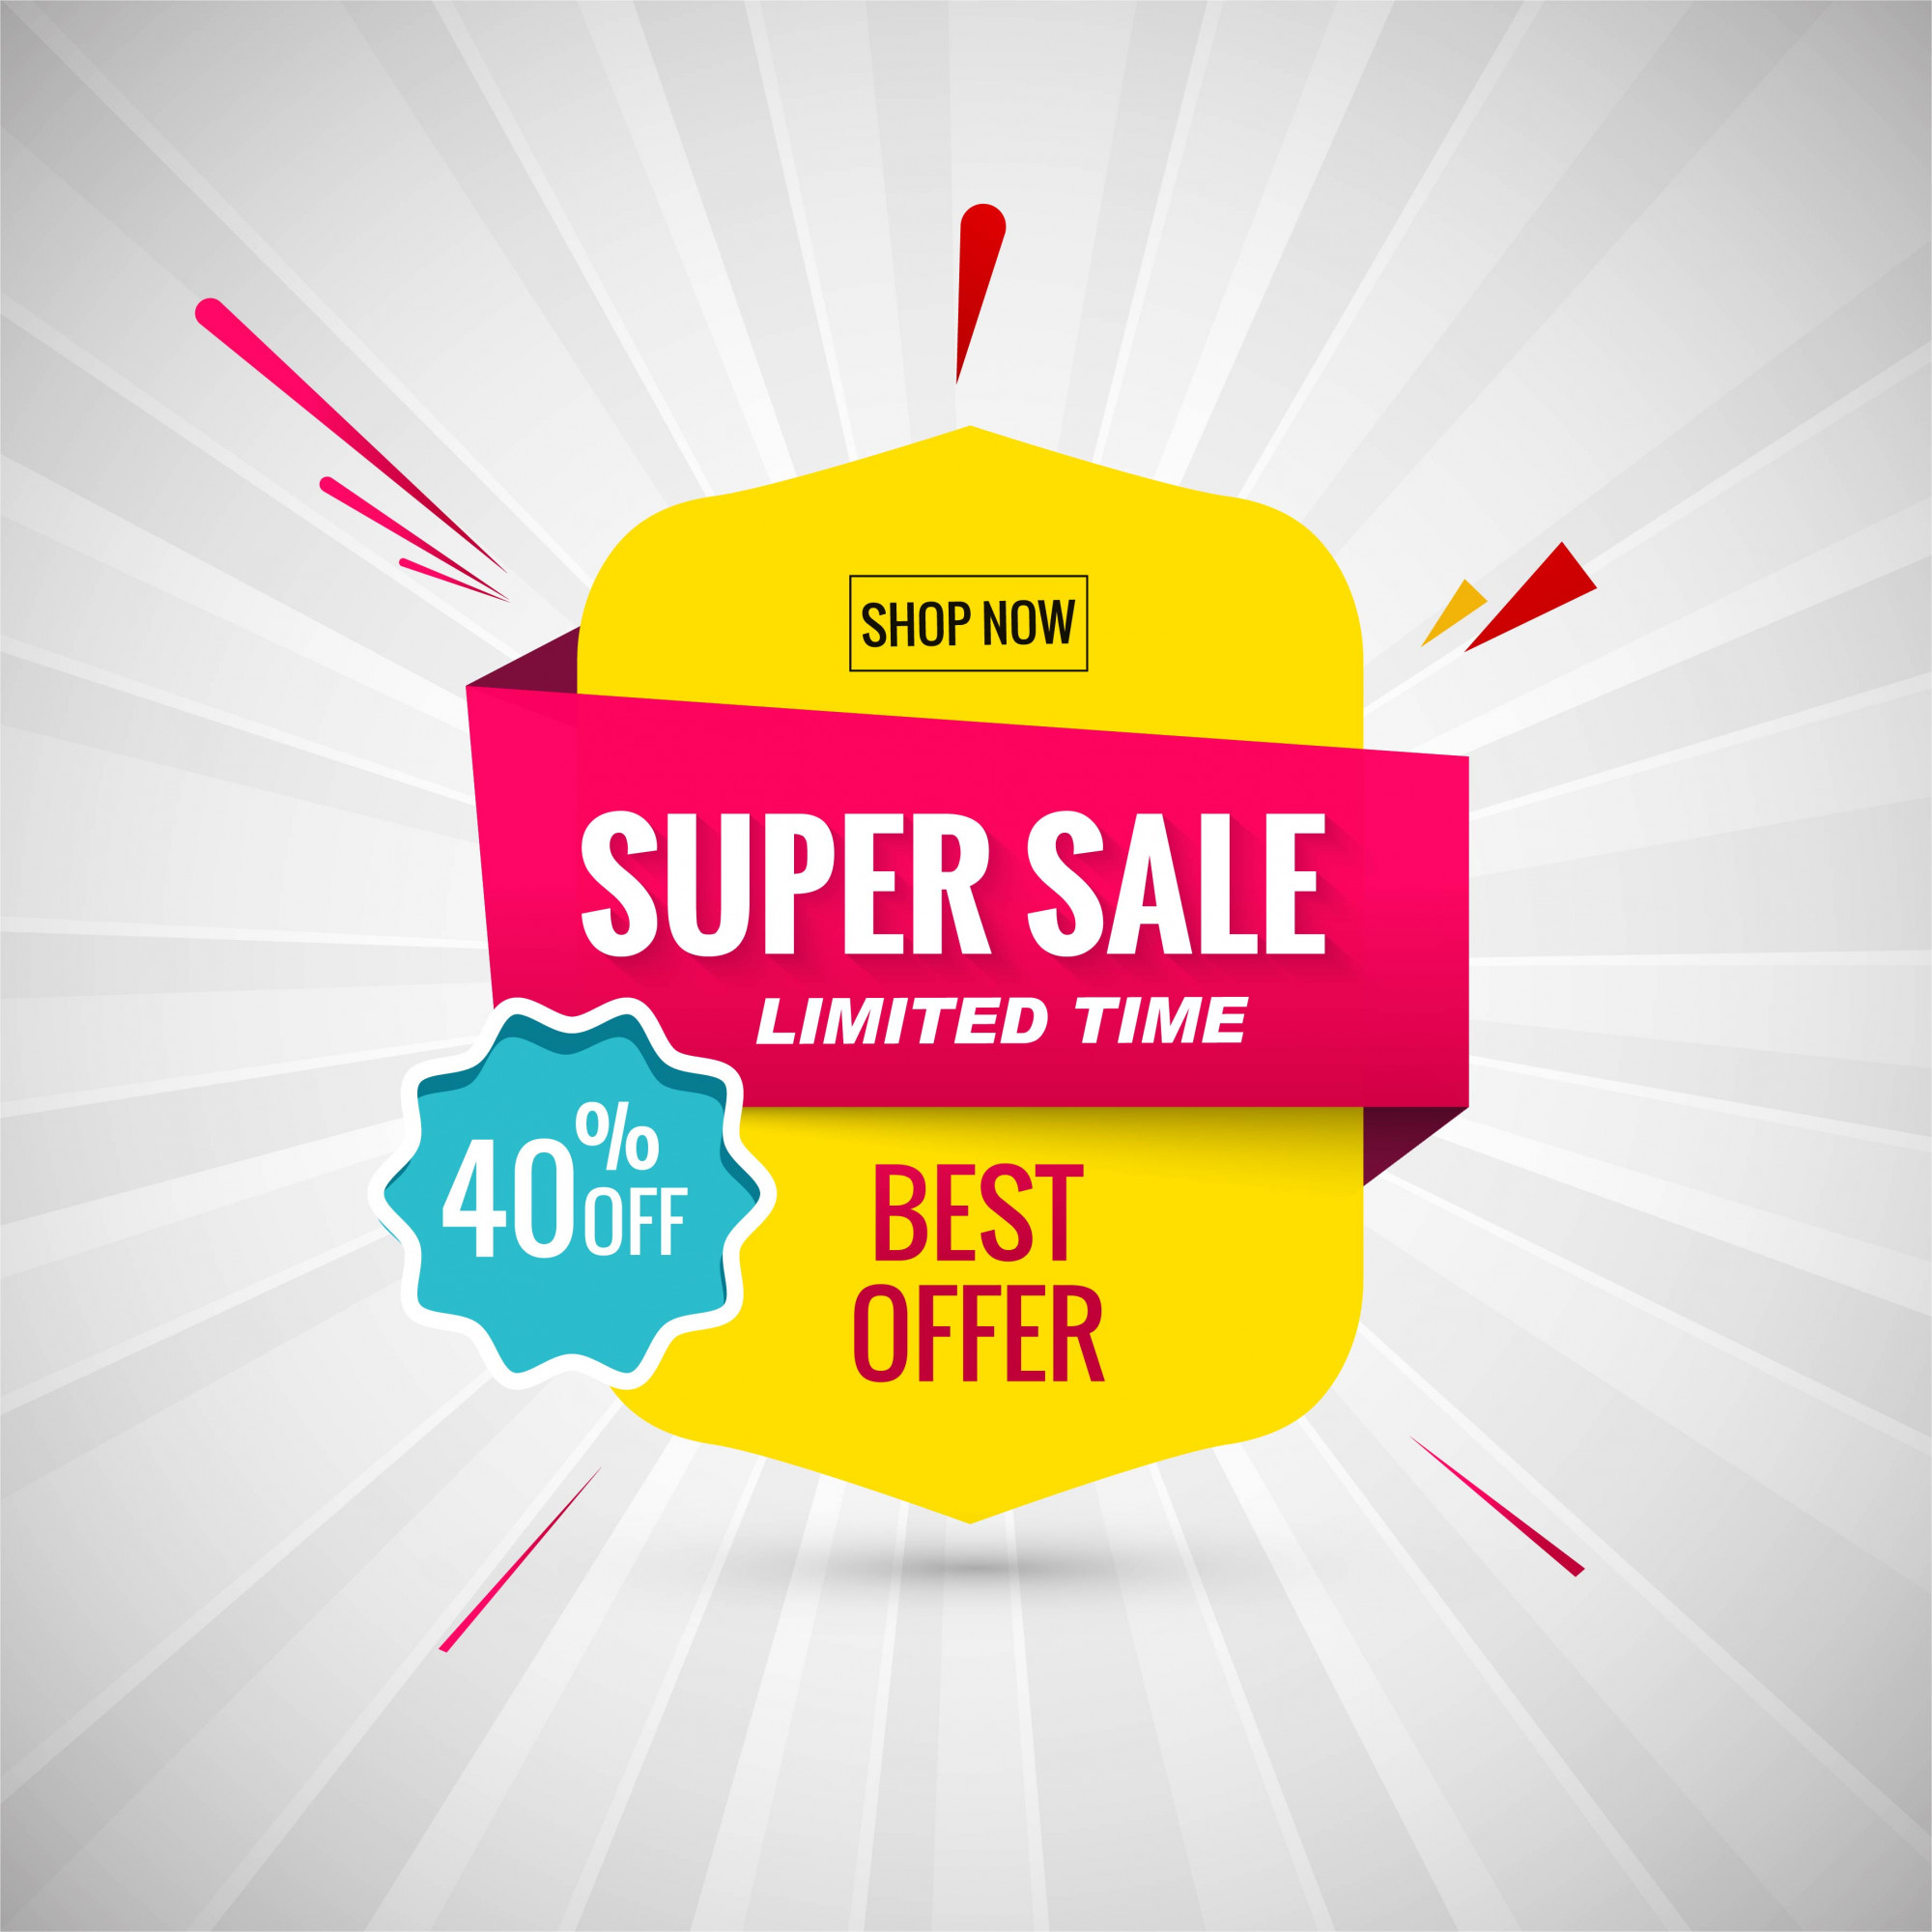 Super Sale Banner Design. Vektor-Illustration